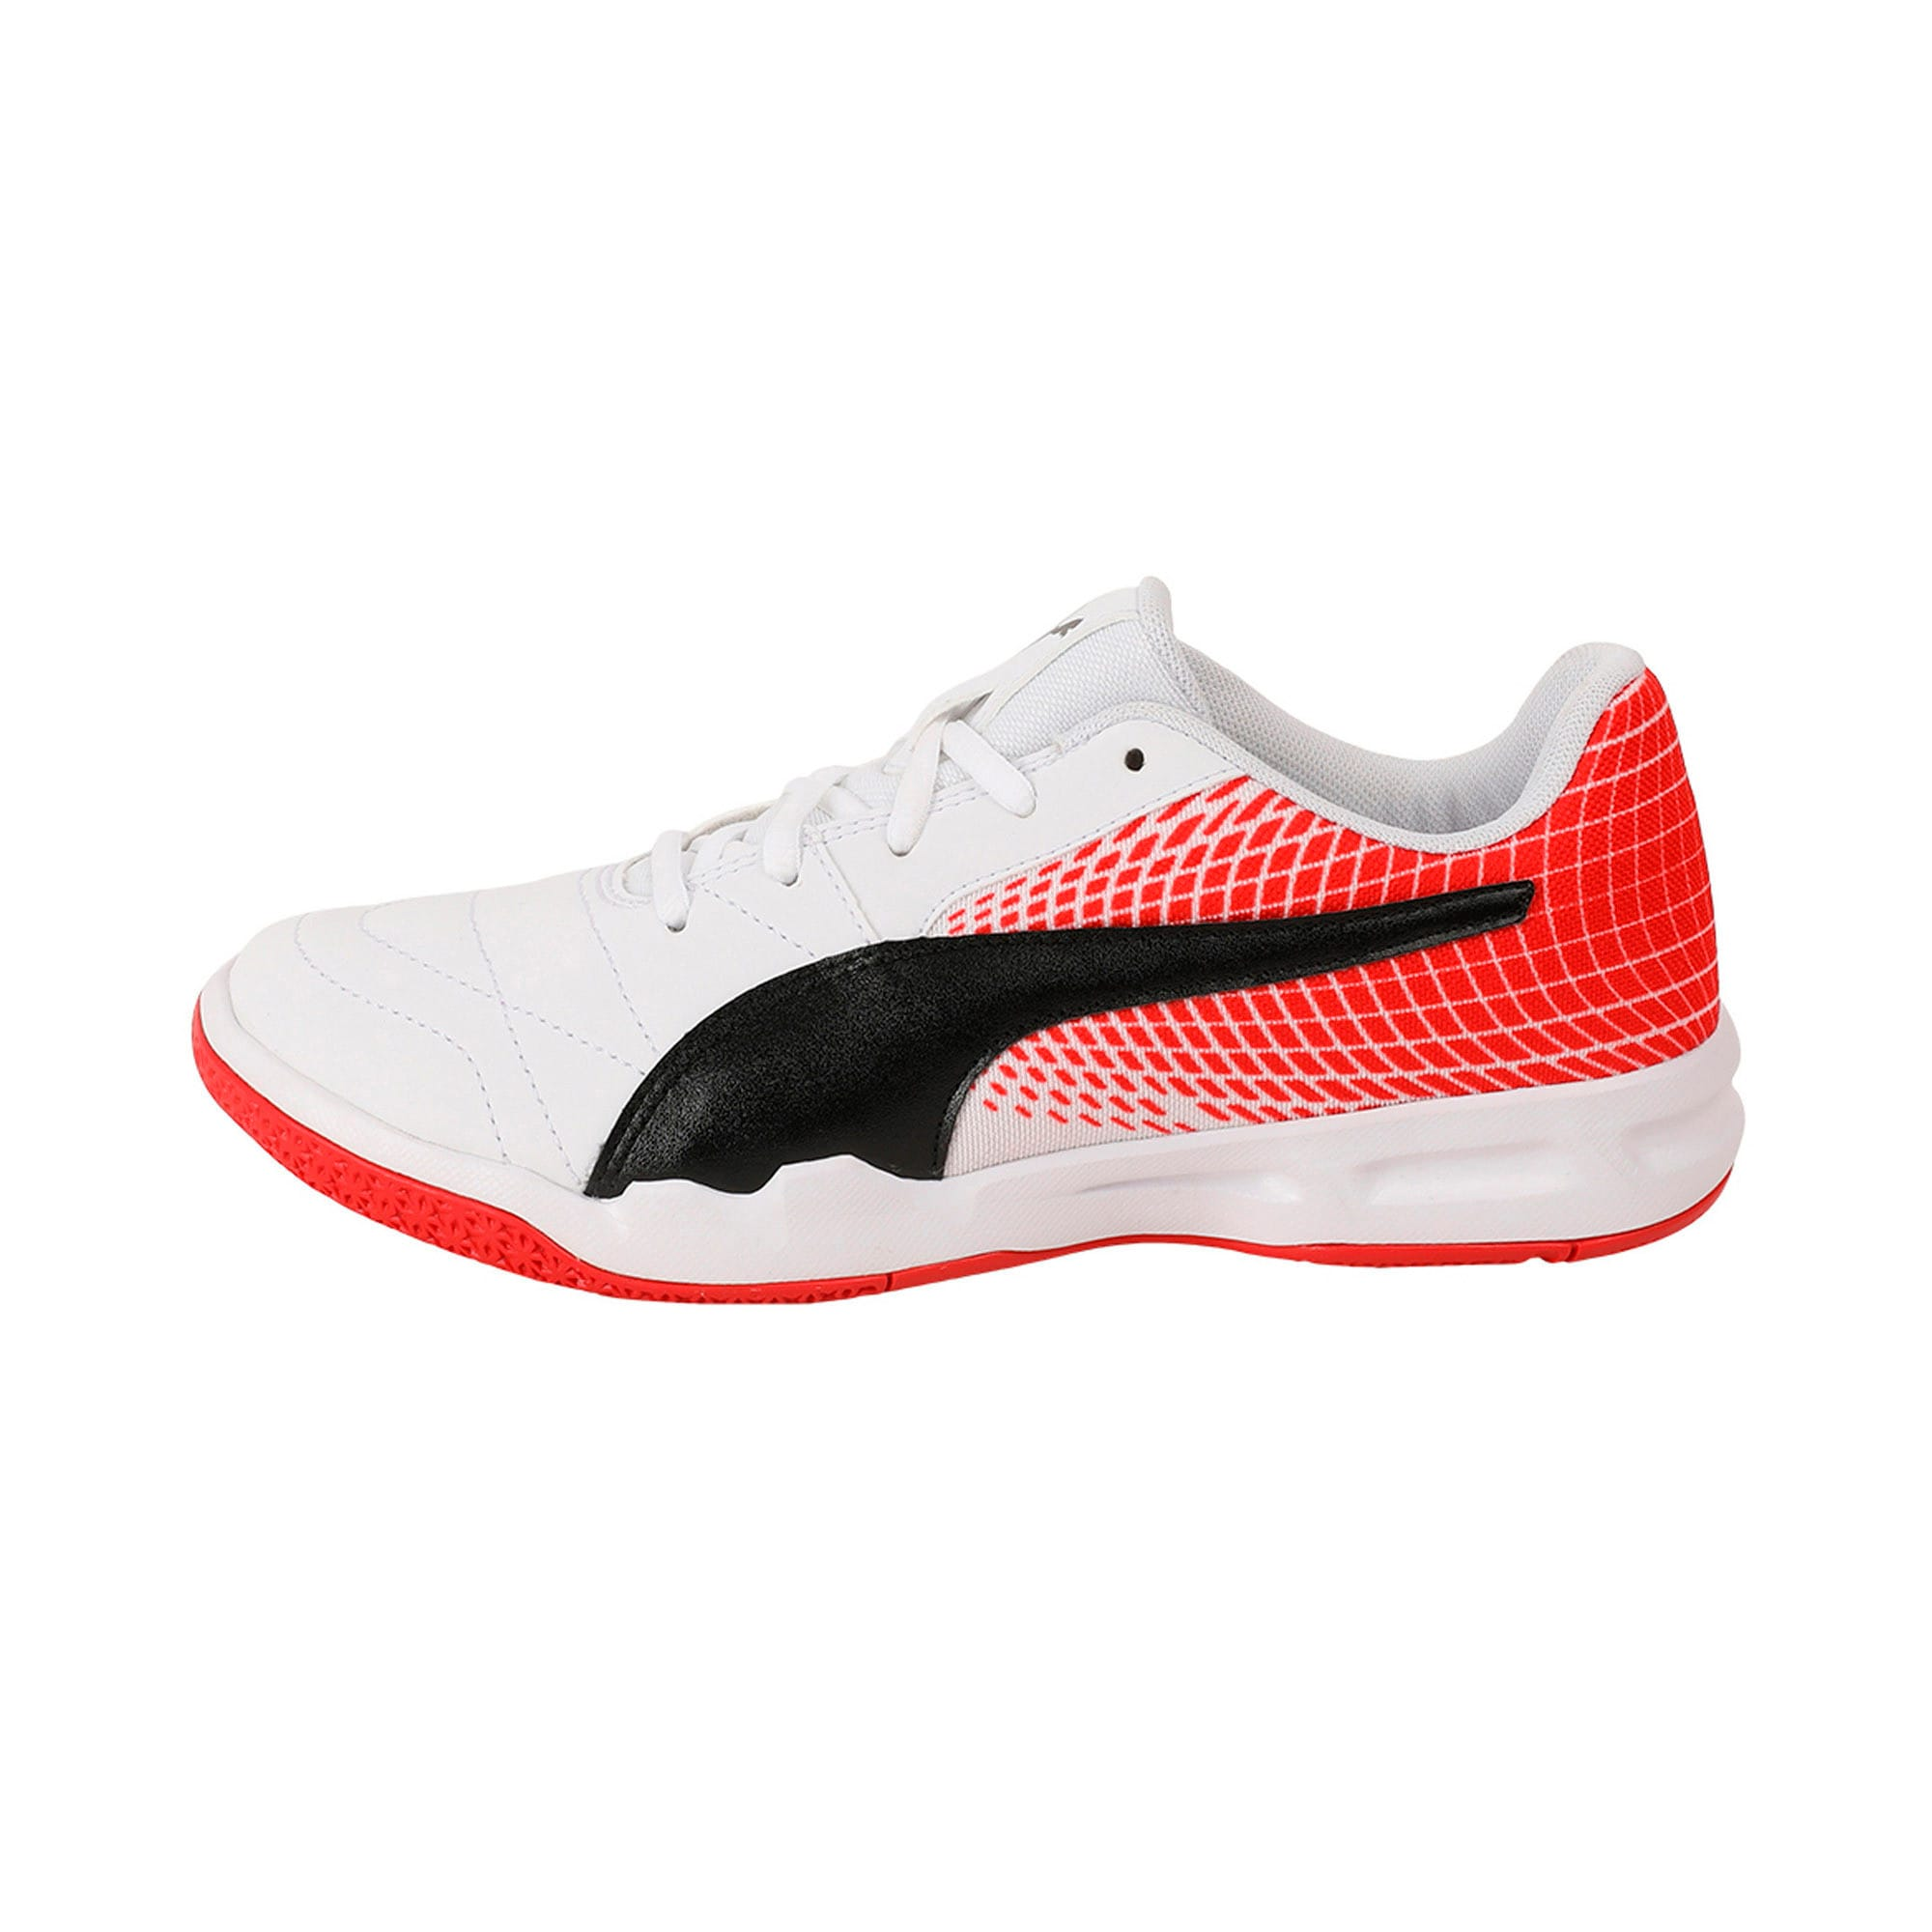 Thumbnail 1 of Veloz Indoor NG Kids' Training Shoes, White-Black-Flame Scarlet, medium-IND